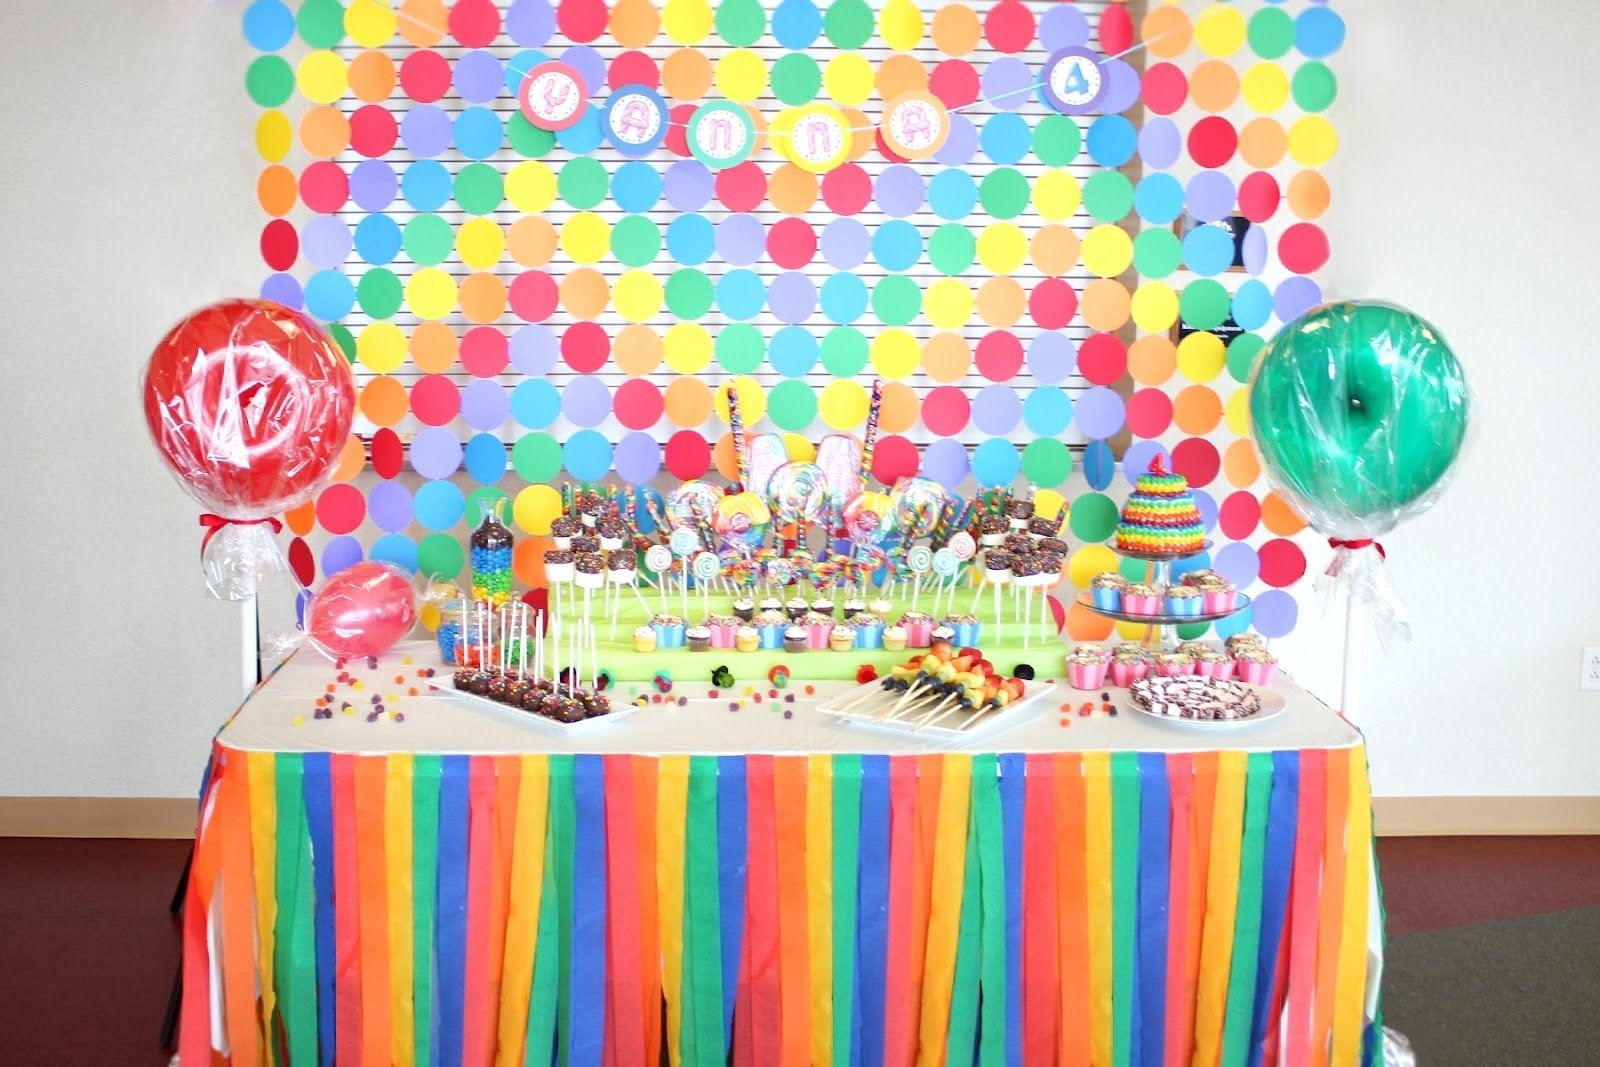 10 Perfect Birthday Party Ideas For Boys Age 10 kids parties perth daisyandskyla perth party organizer 1 2020